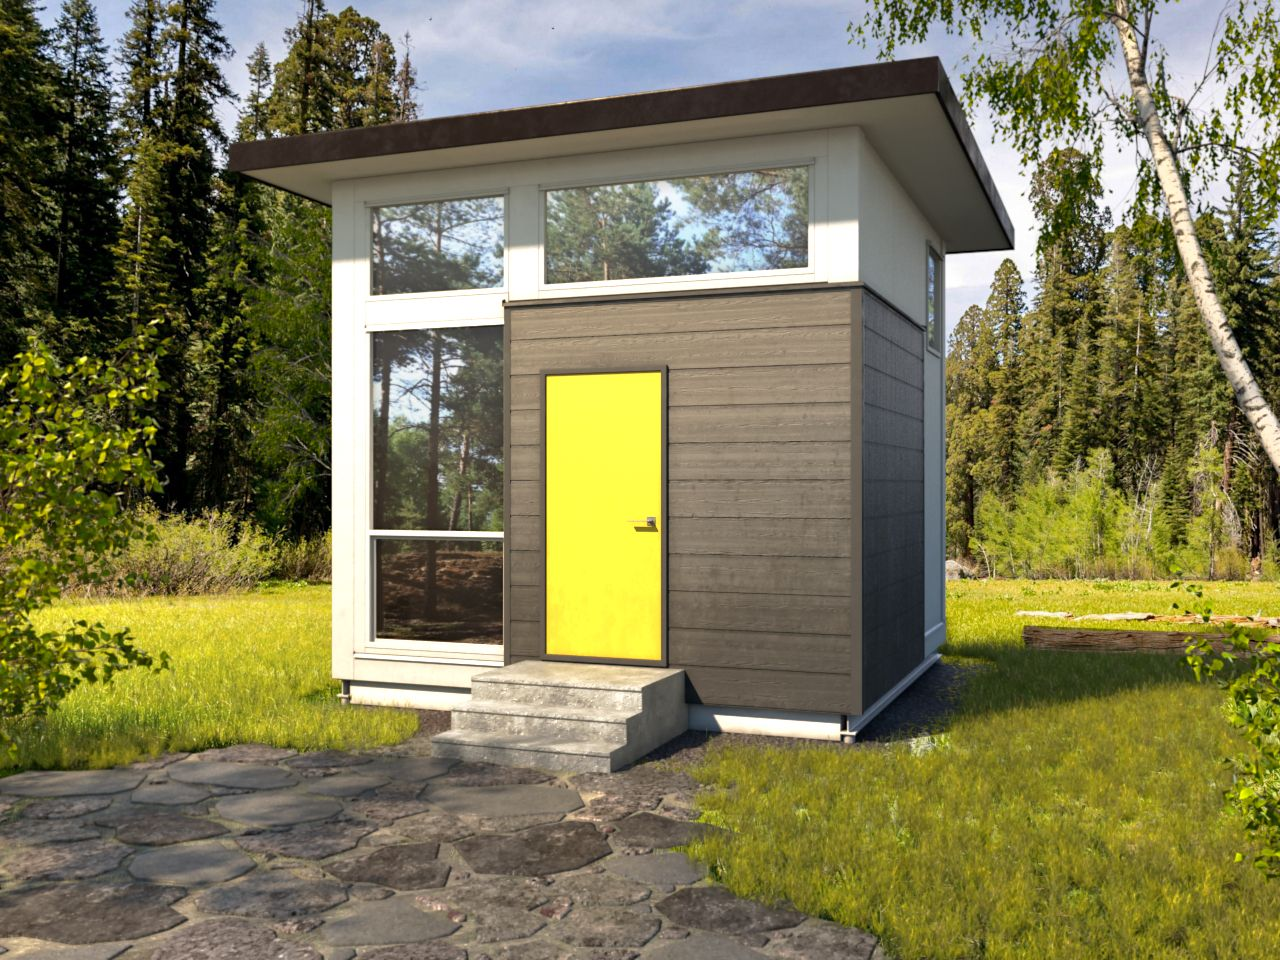 Amazon Is Selling a Nomad Cube Tiny Home That Won't Break the Bank